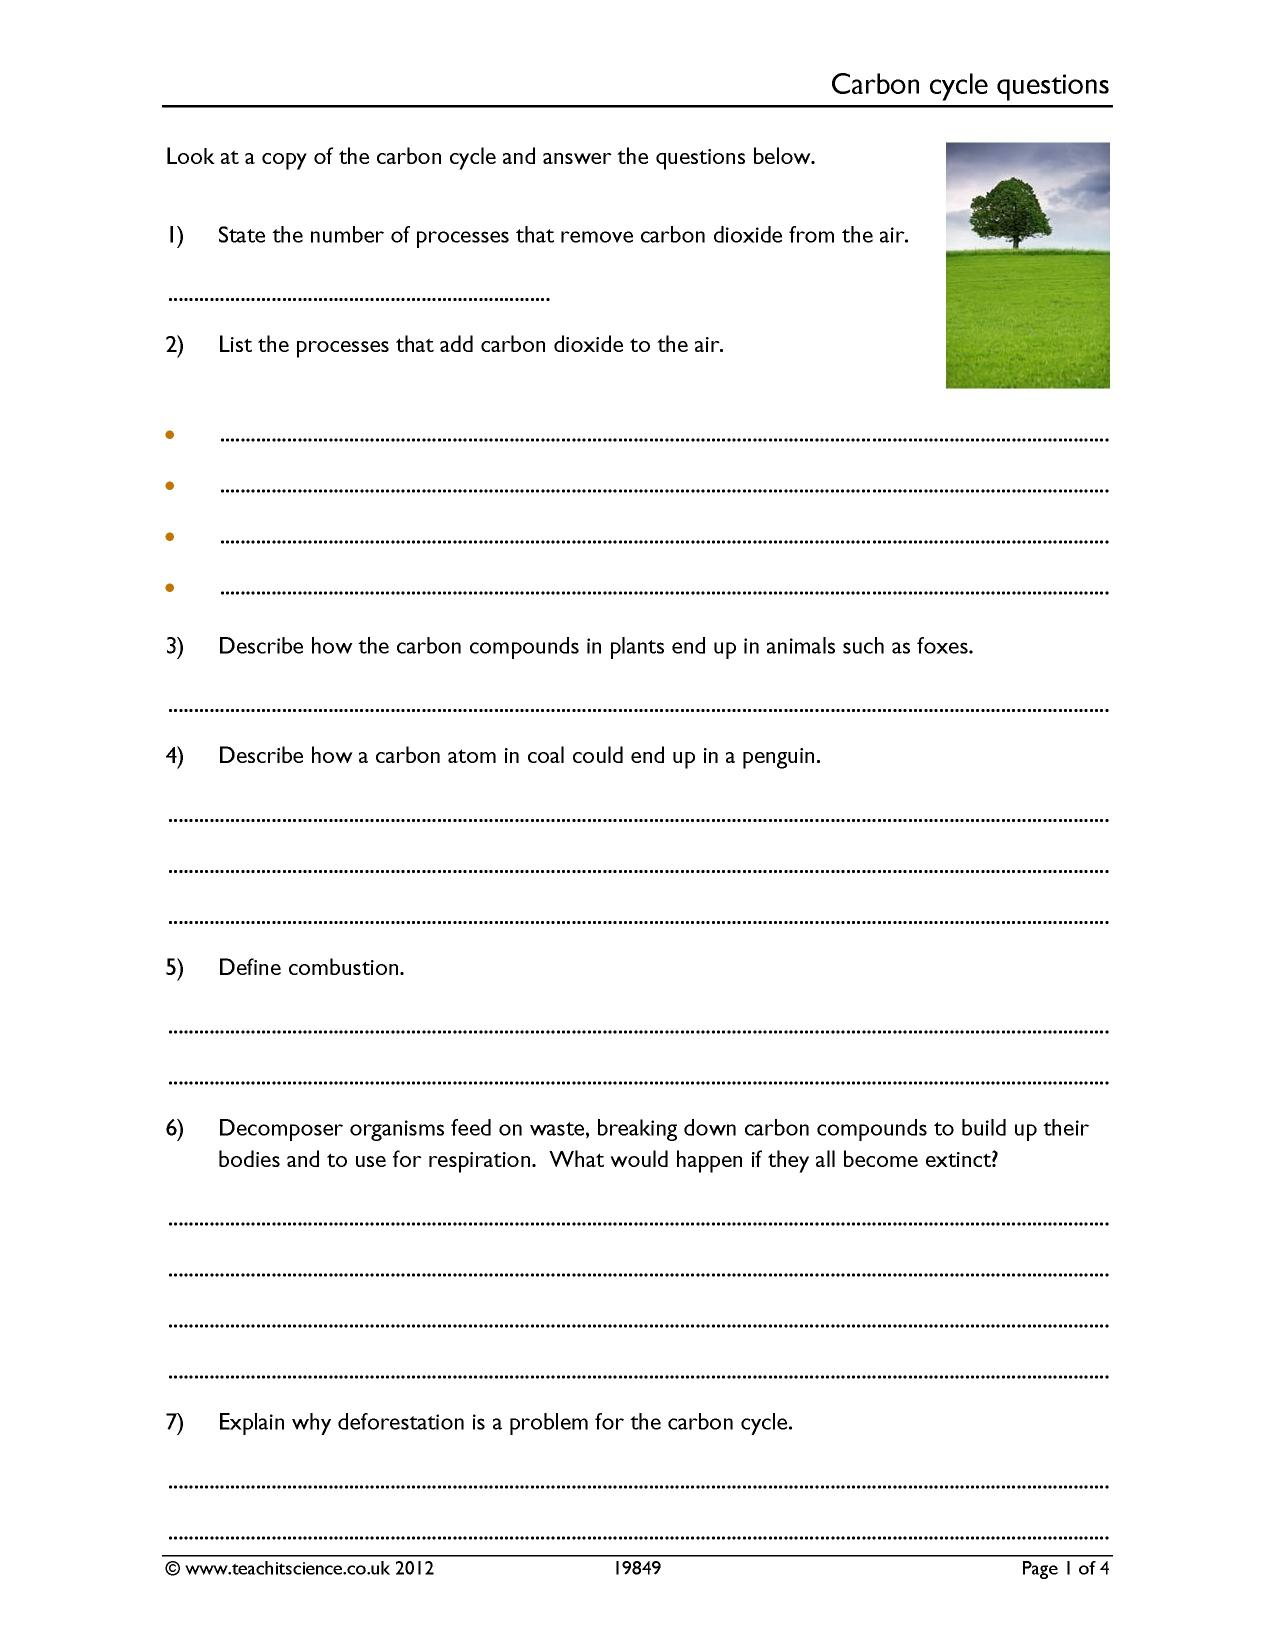 Carbon Cycle Questions Worksheet